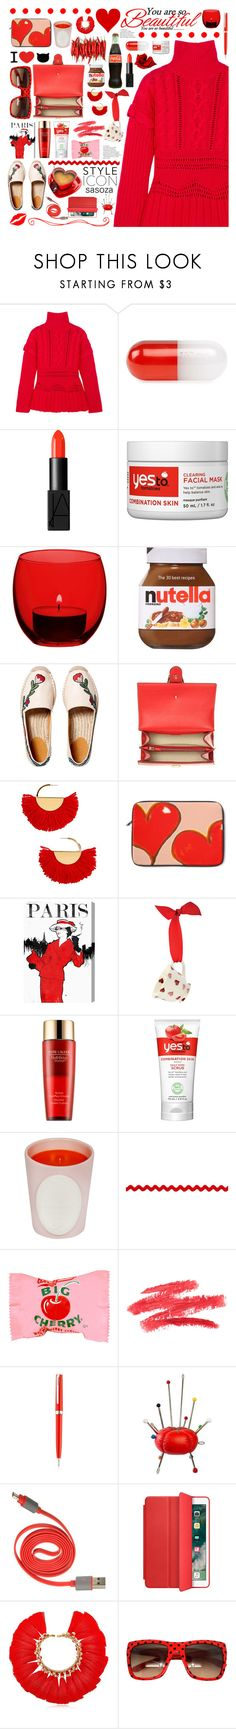 """red by Sasoza"" by sasooza ❤ liked on Polyvore featuring Altuzarra, Jonathan Adler, NARS Cosmetics, Yes To, LSA International, Gucci, BaubleBar, Oliver Gal Artist Co., Estée Lauder and Ladurée"